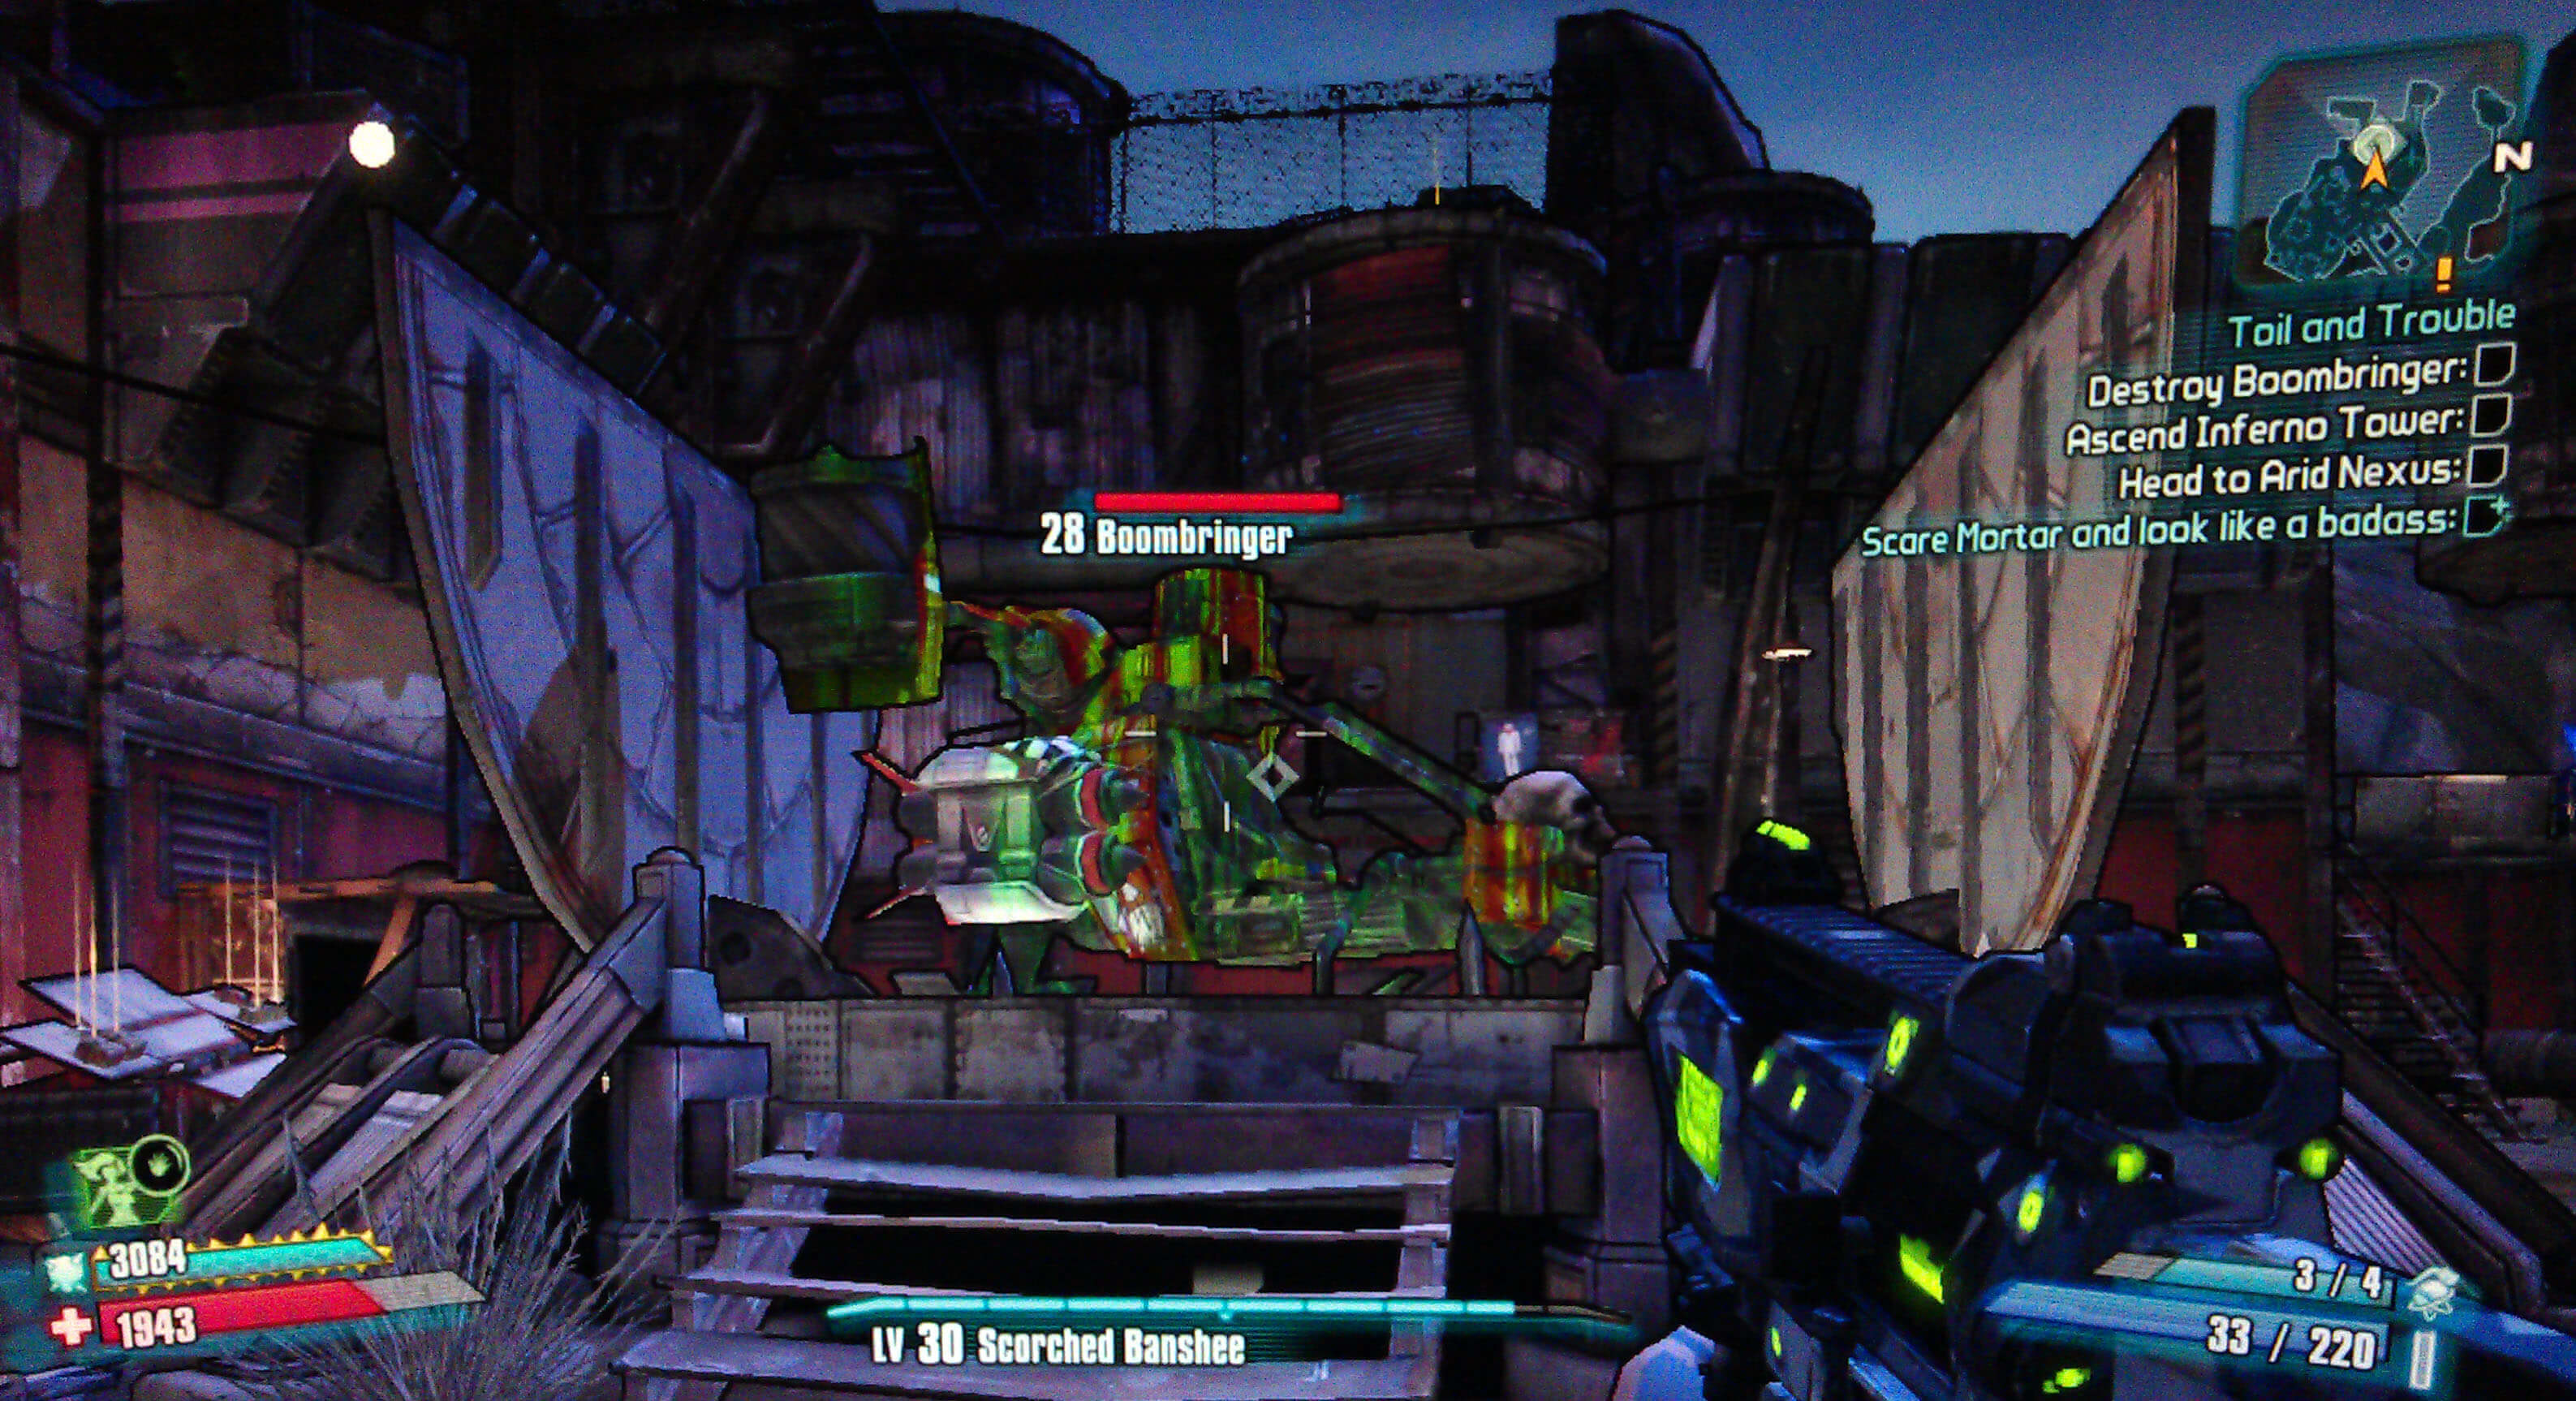 Toil and Trouble borderlands 2 toil and trouble walkthrough vgfaq  at mifinder.co